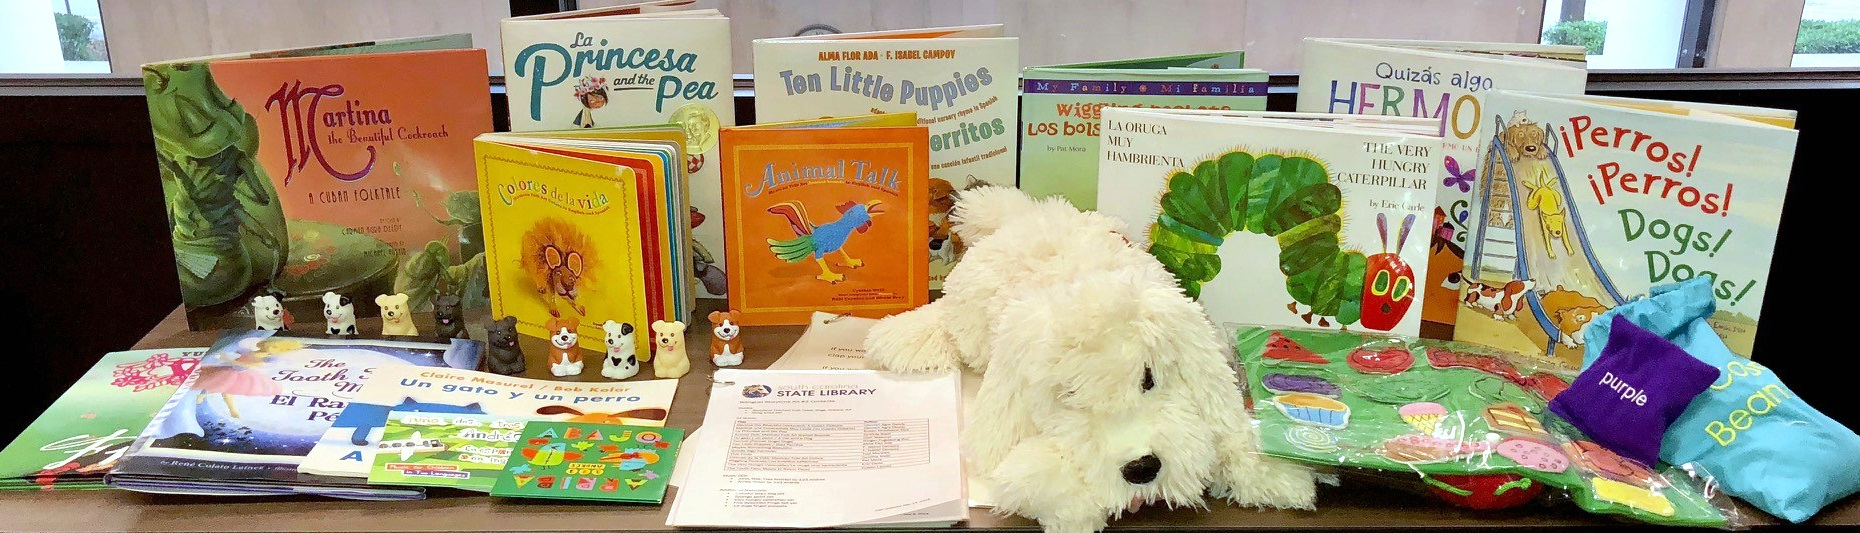 Storytime Kit Display